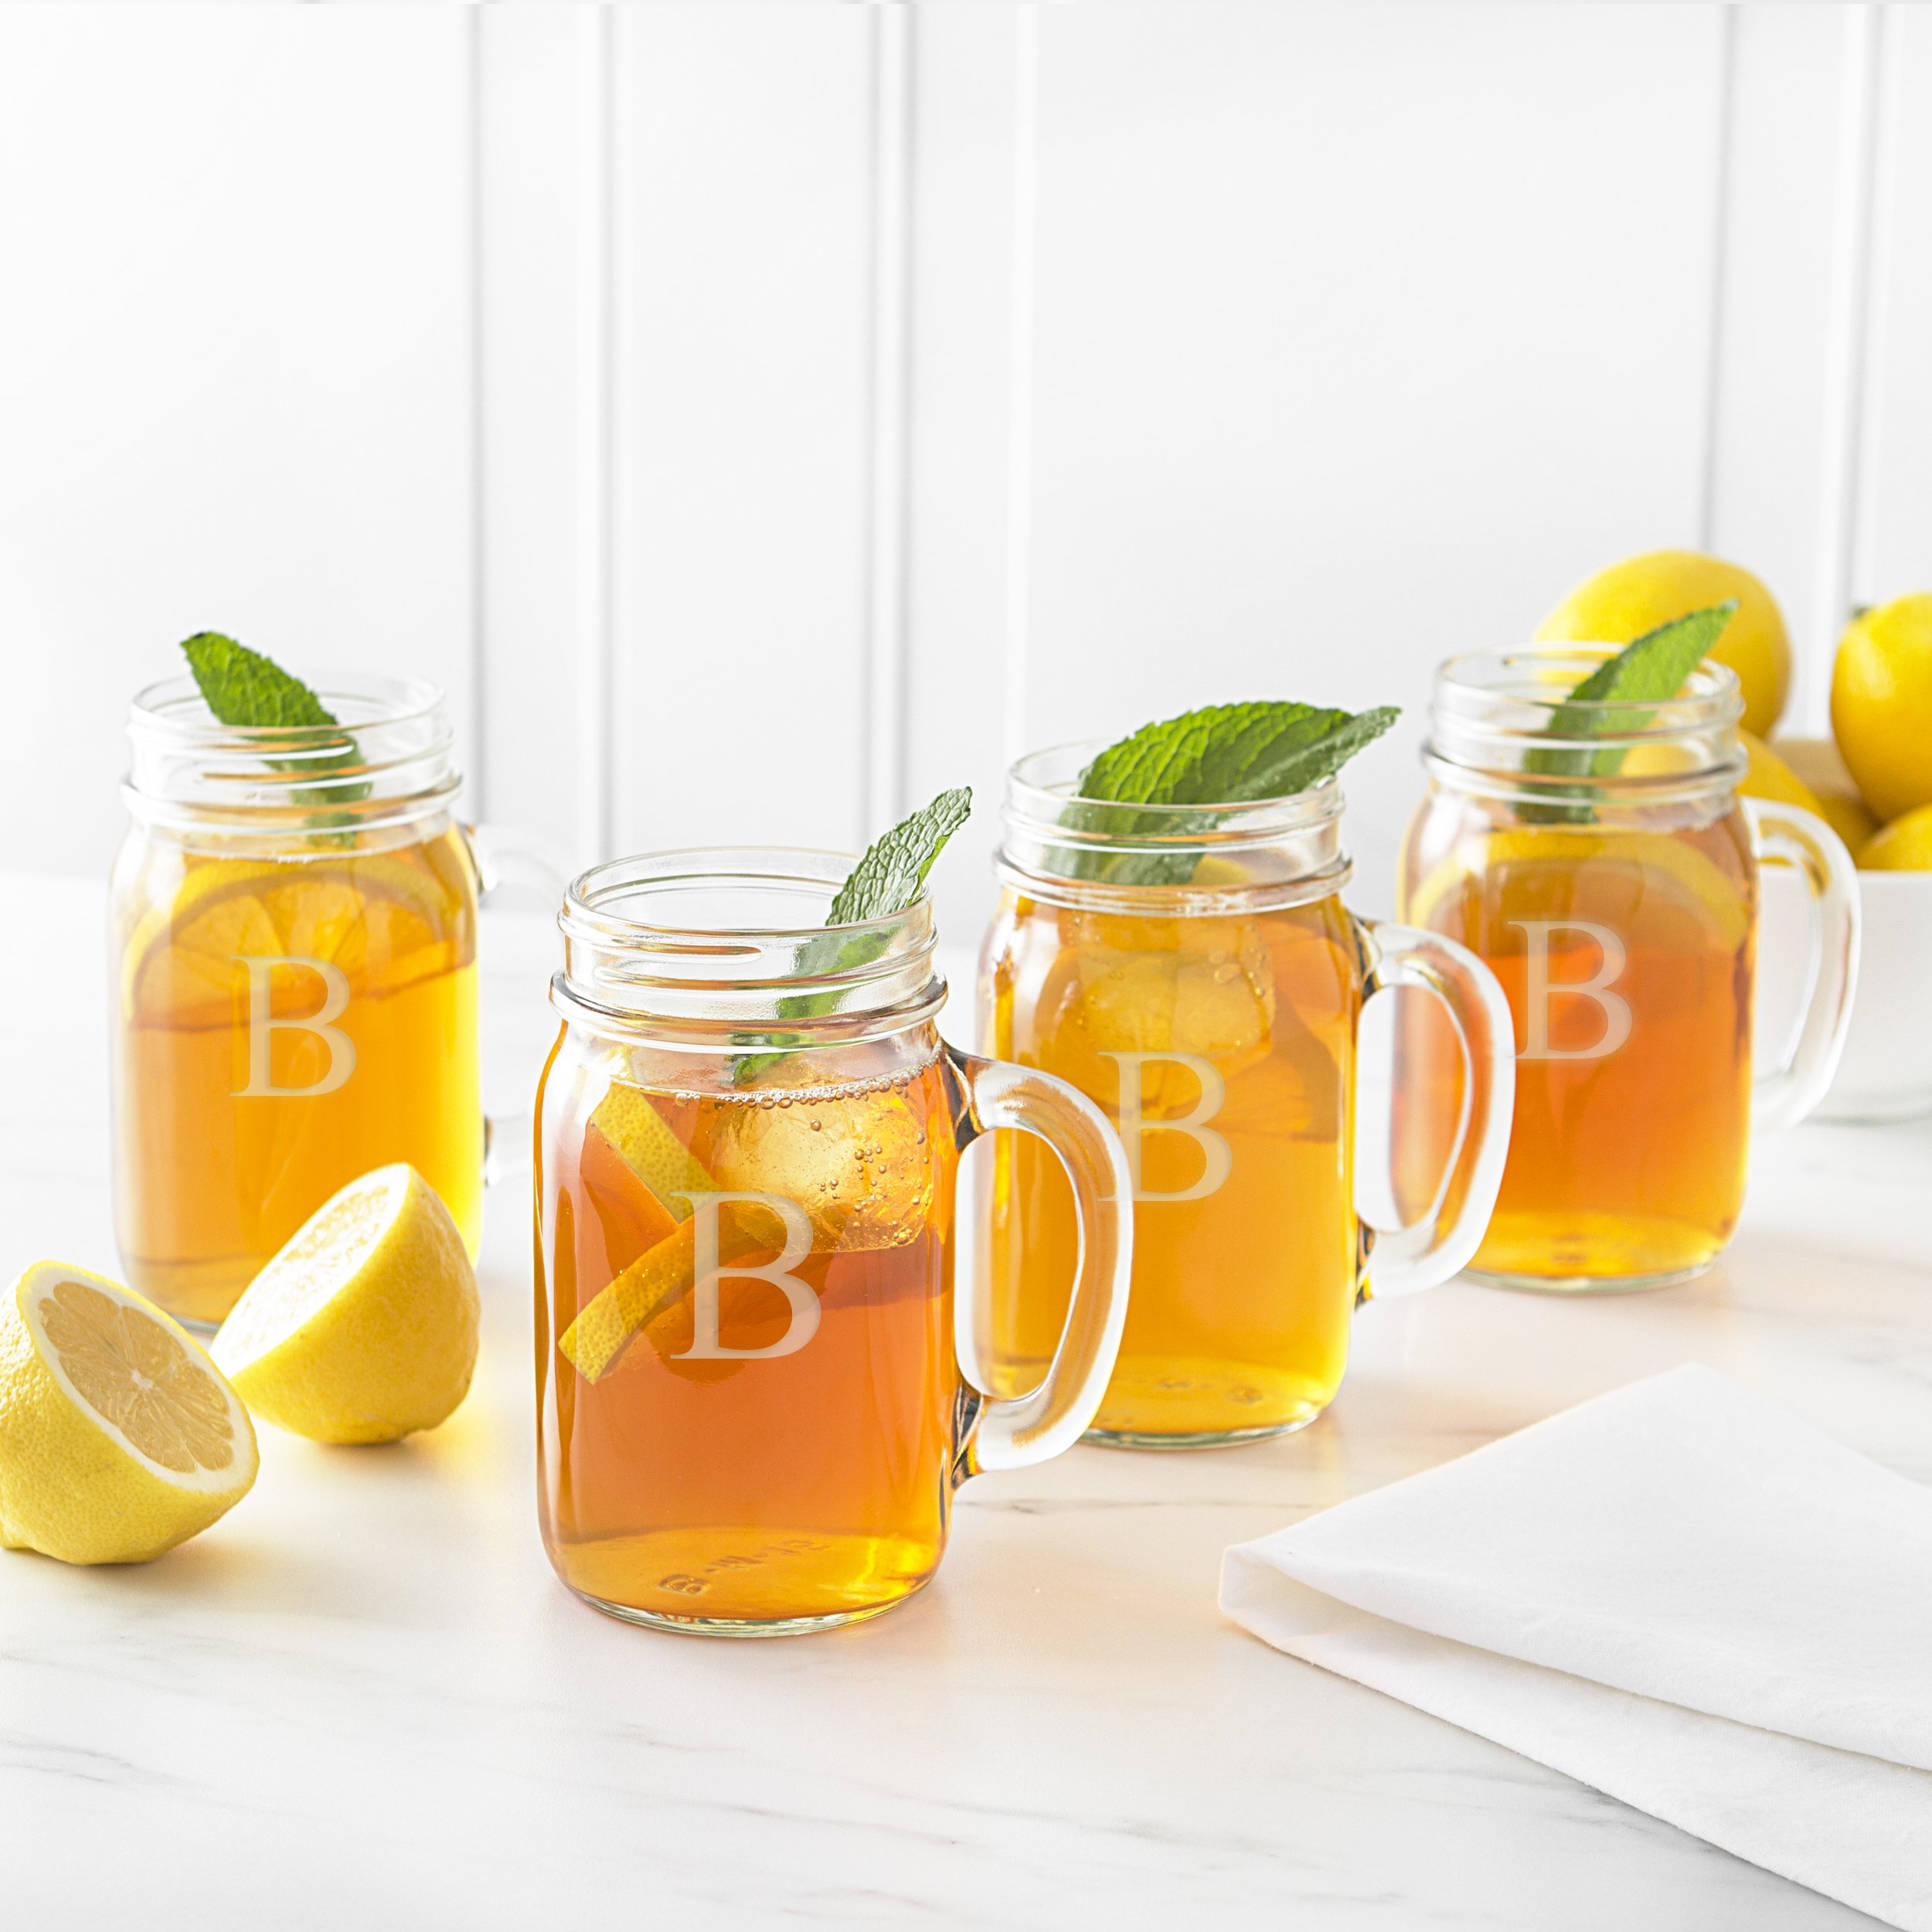 Cathy's Concepts Personalized Mason Jar Glasses, Set of 4, Letter B